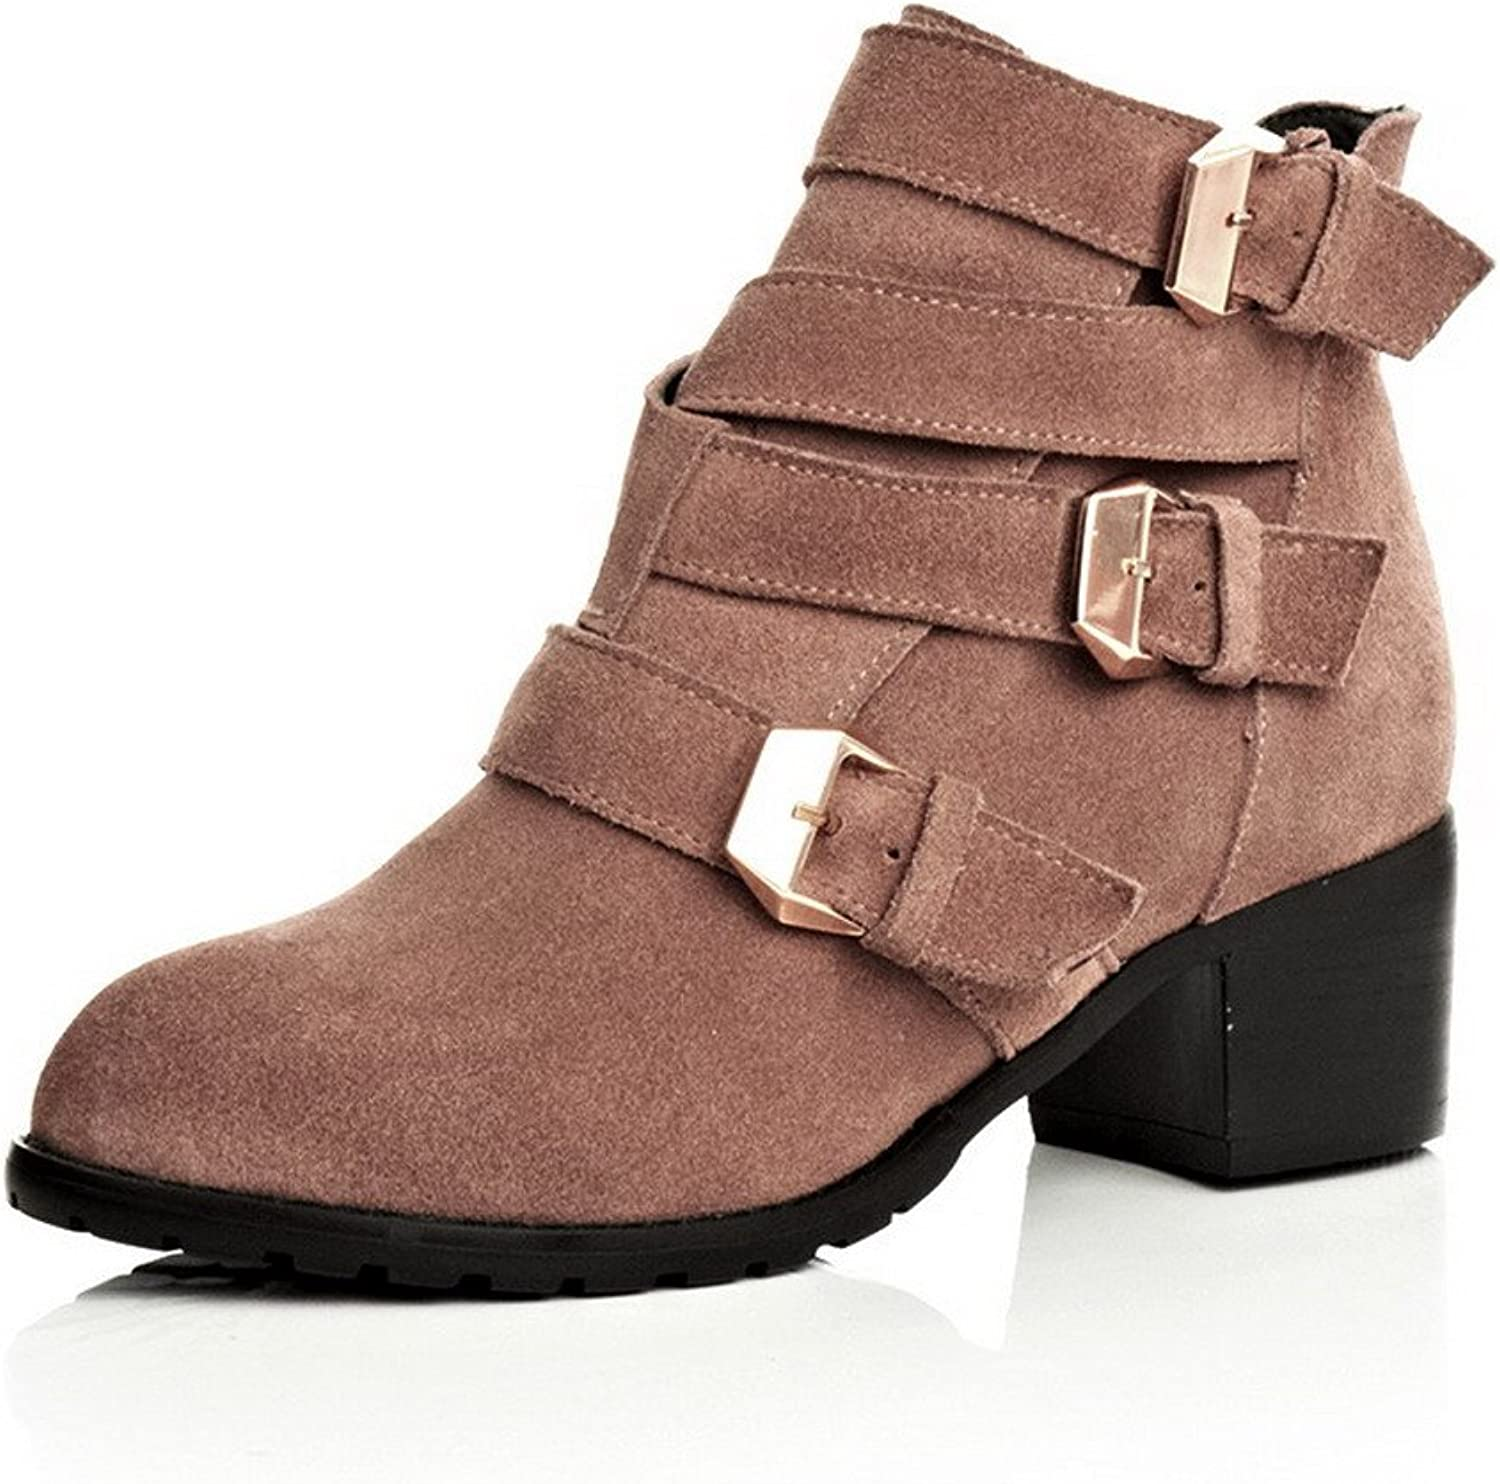 WeiPoot Women's Frosted Solid Closed-Toe Boots with Rough Heels